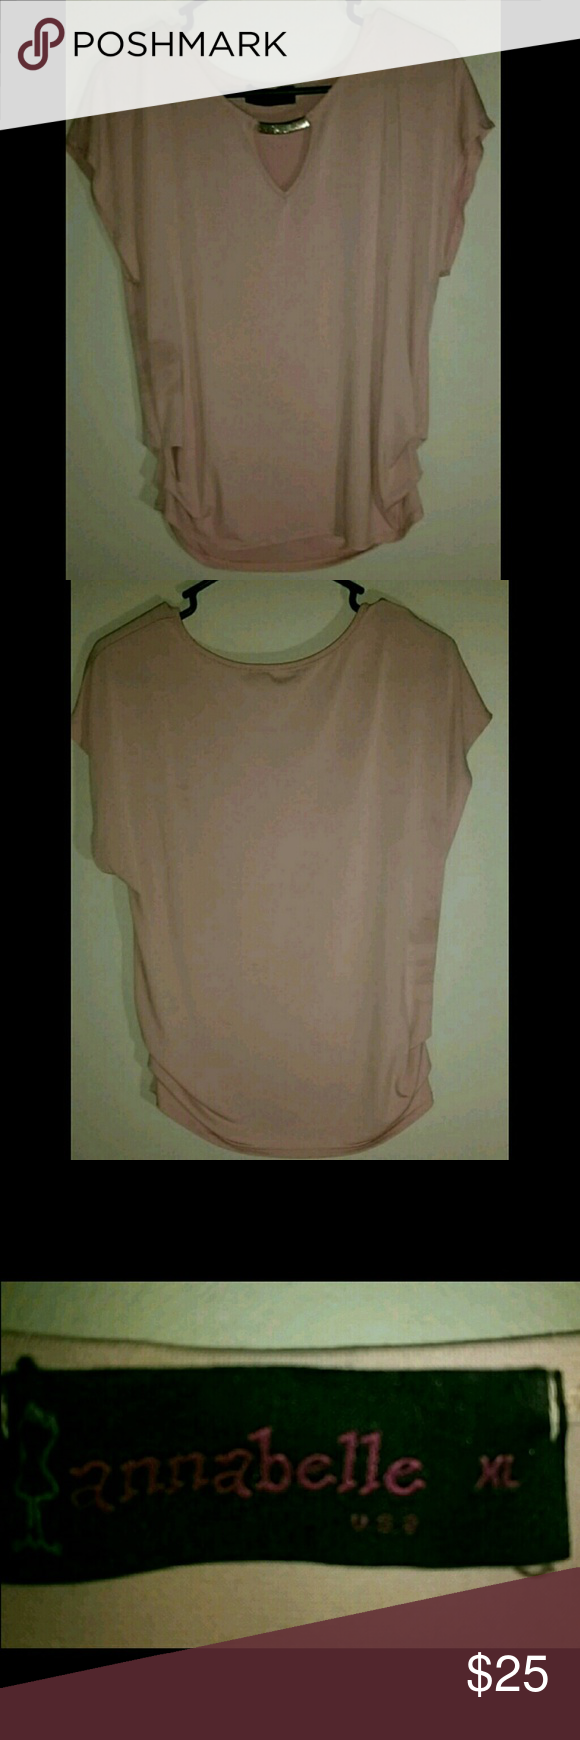 Annabelle Shirt Beautiful #annabelle pale pink shirt, with a dainty gold accent near the neck. Annabelle Tops Blouses